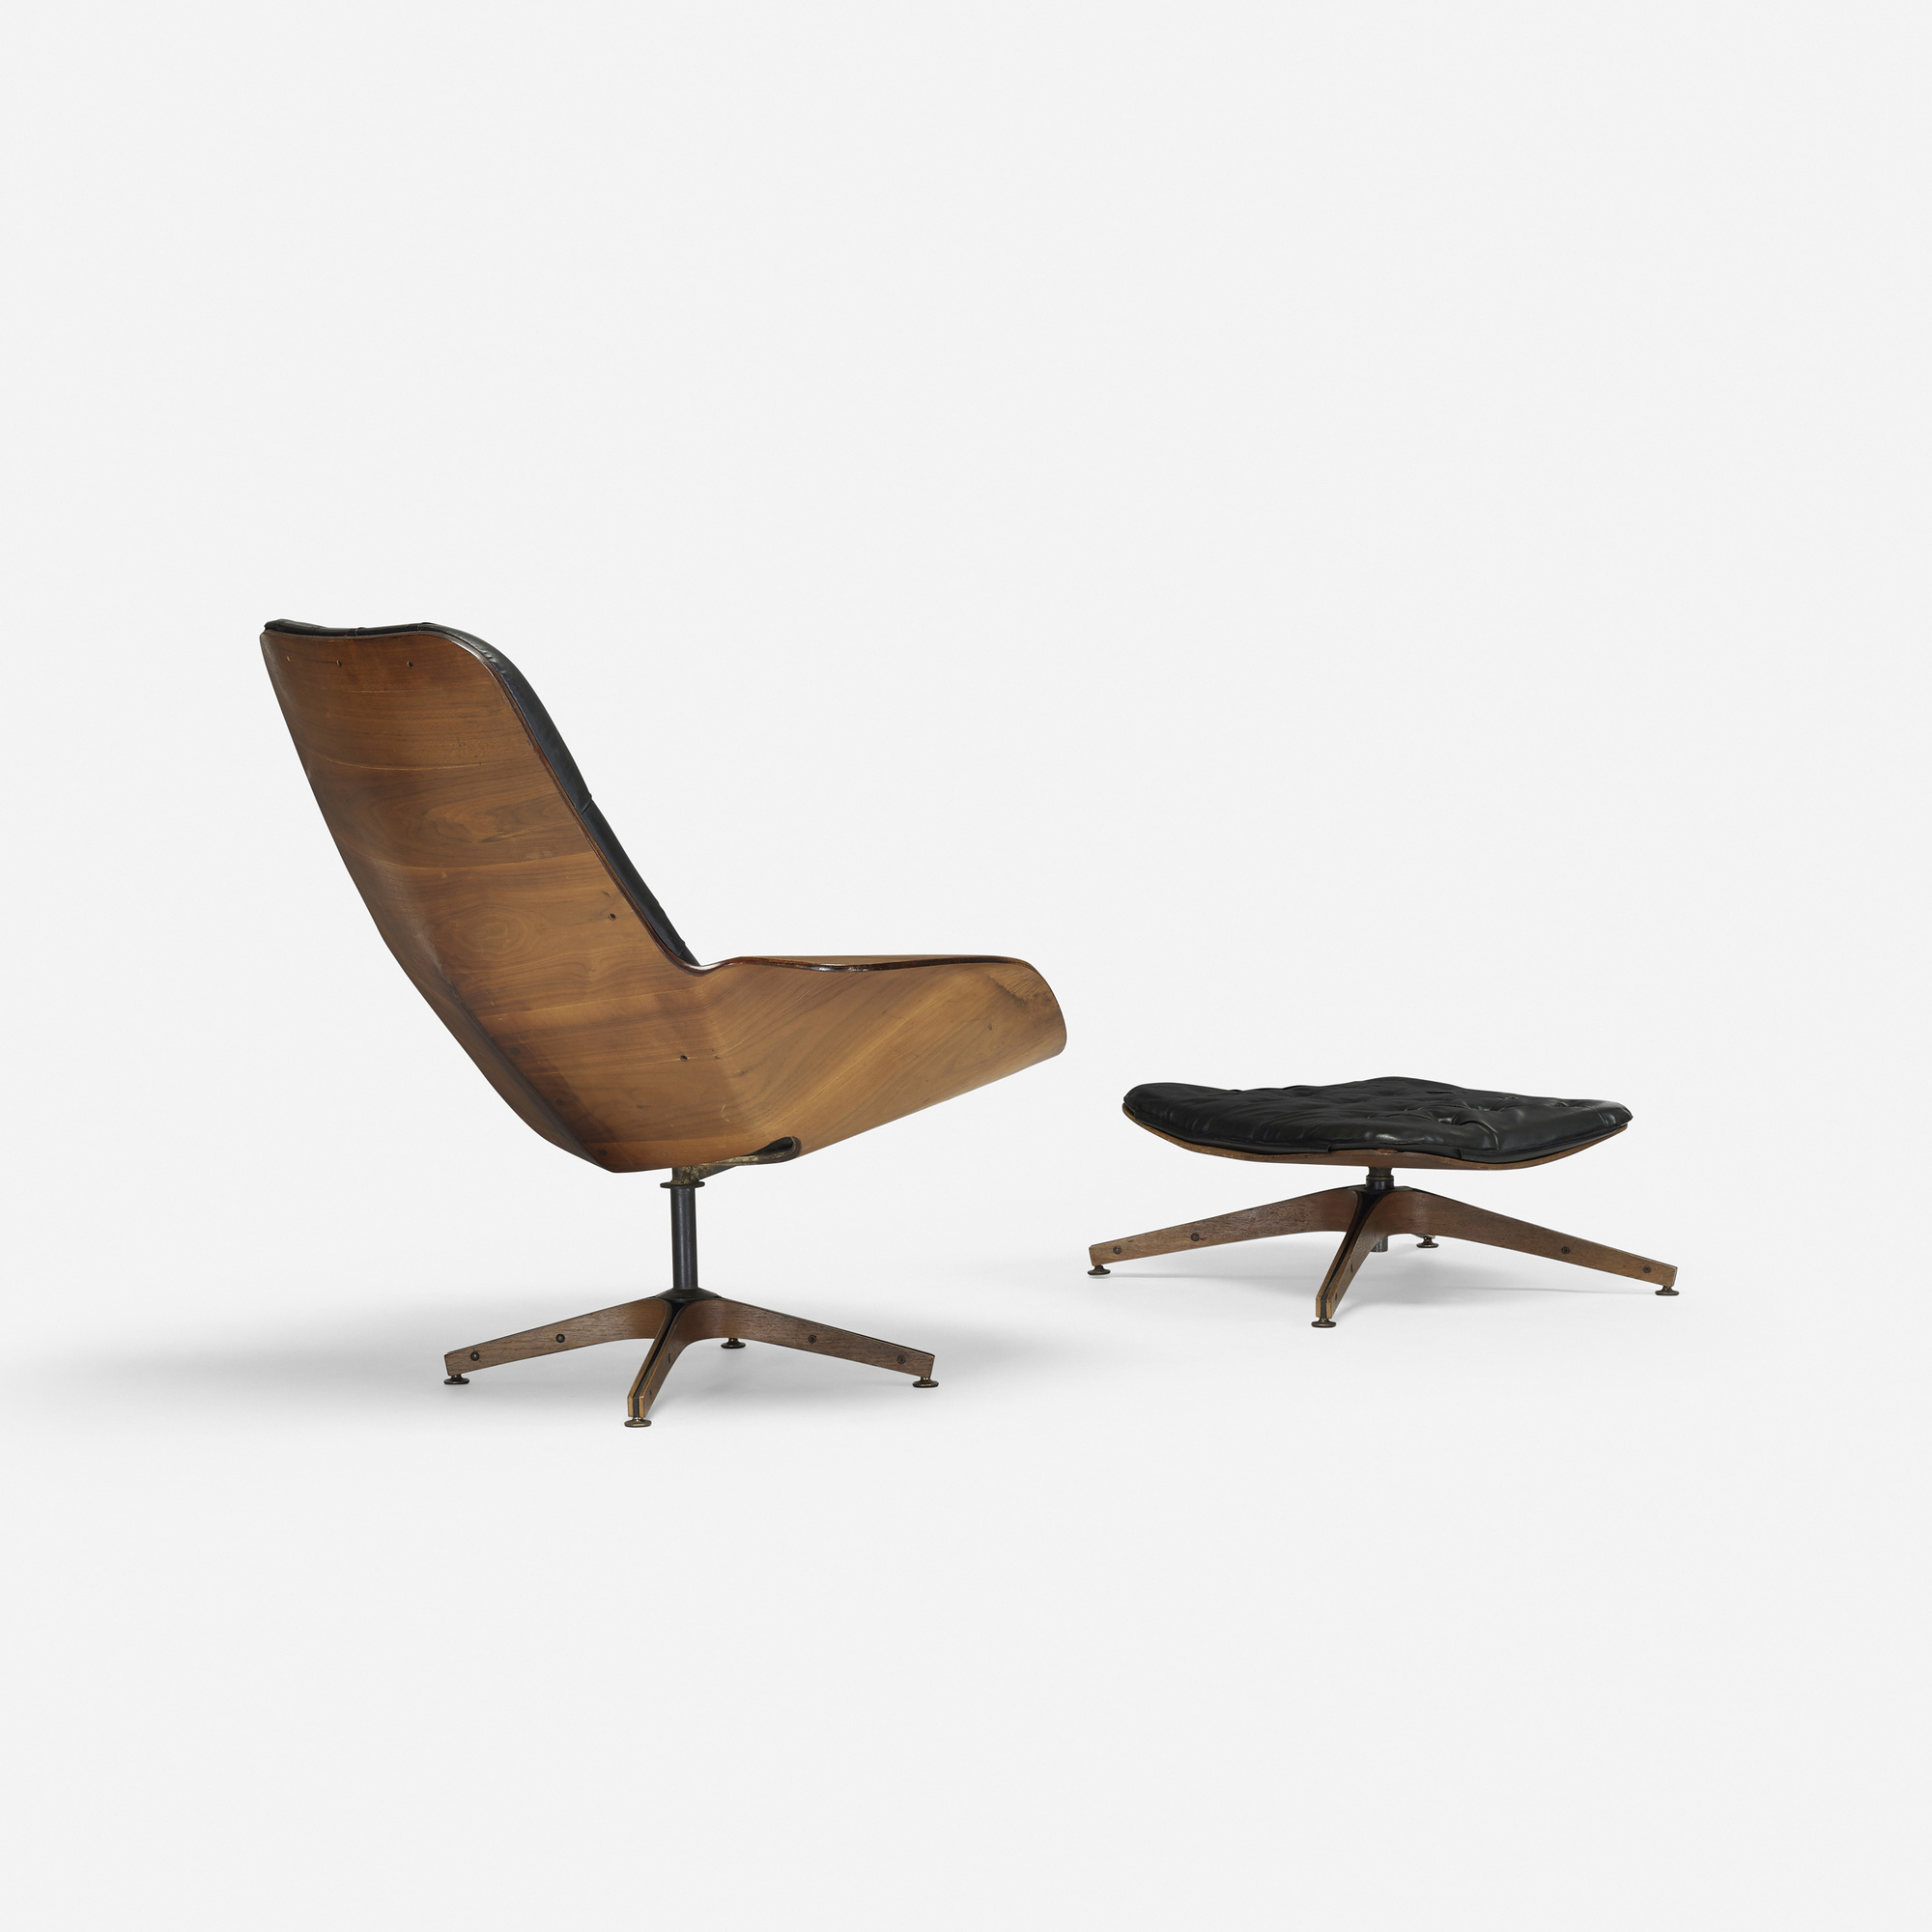 ... 187: George Mulhauser / Mr. Chair Lounge Chair And Ottoman (2 Of 3